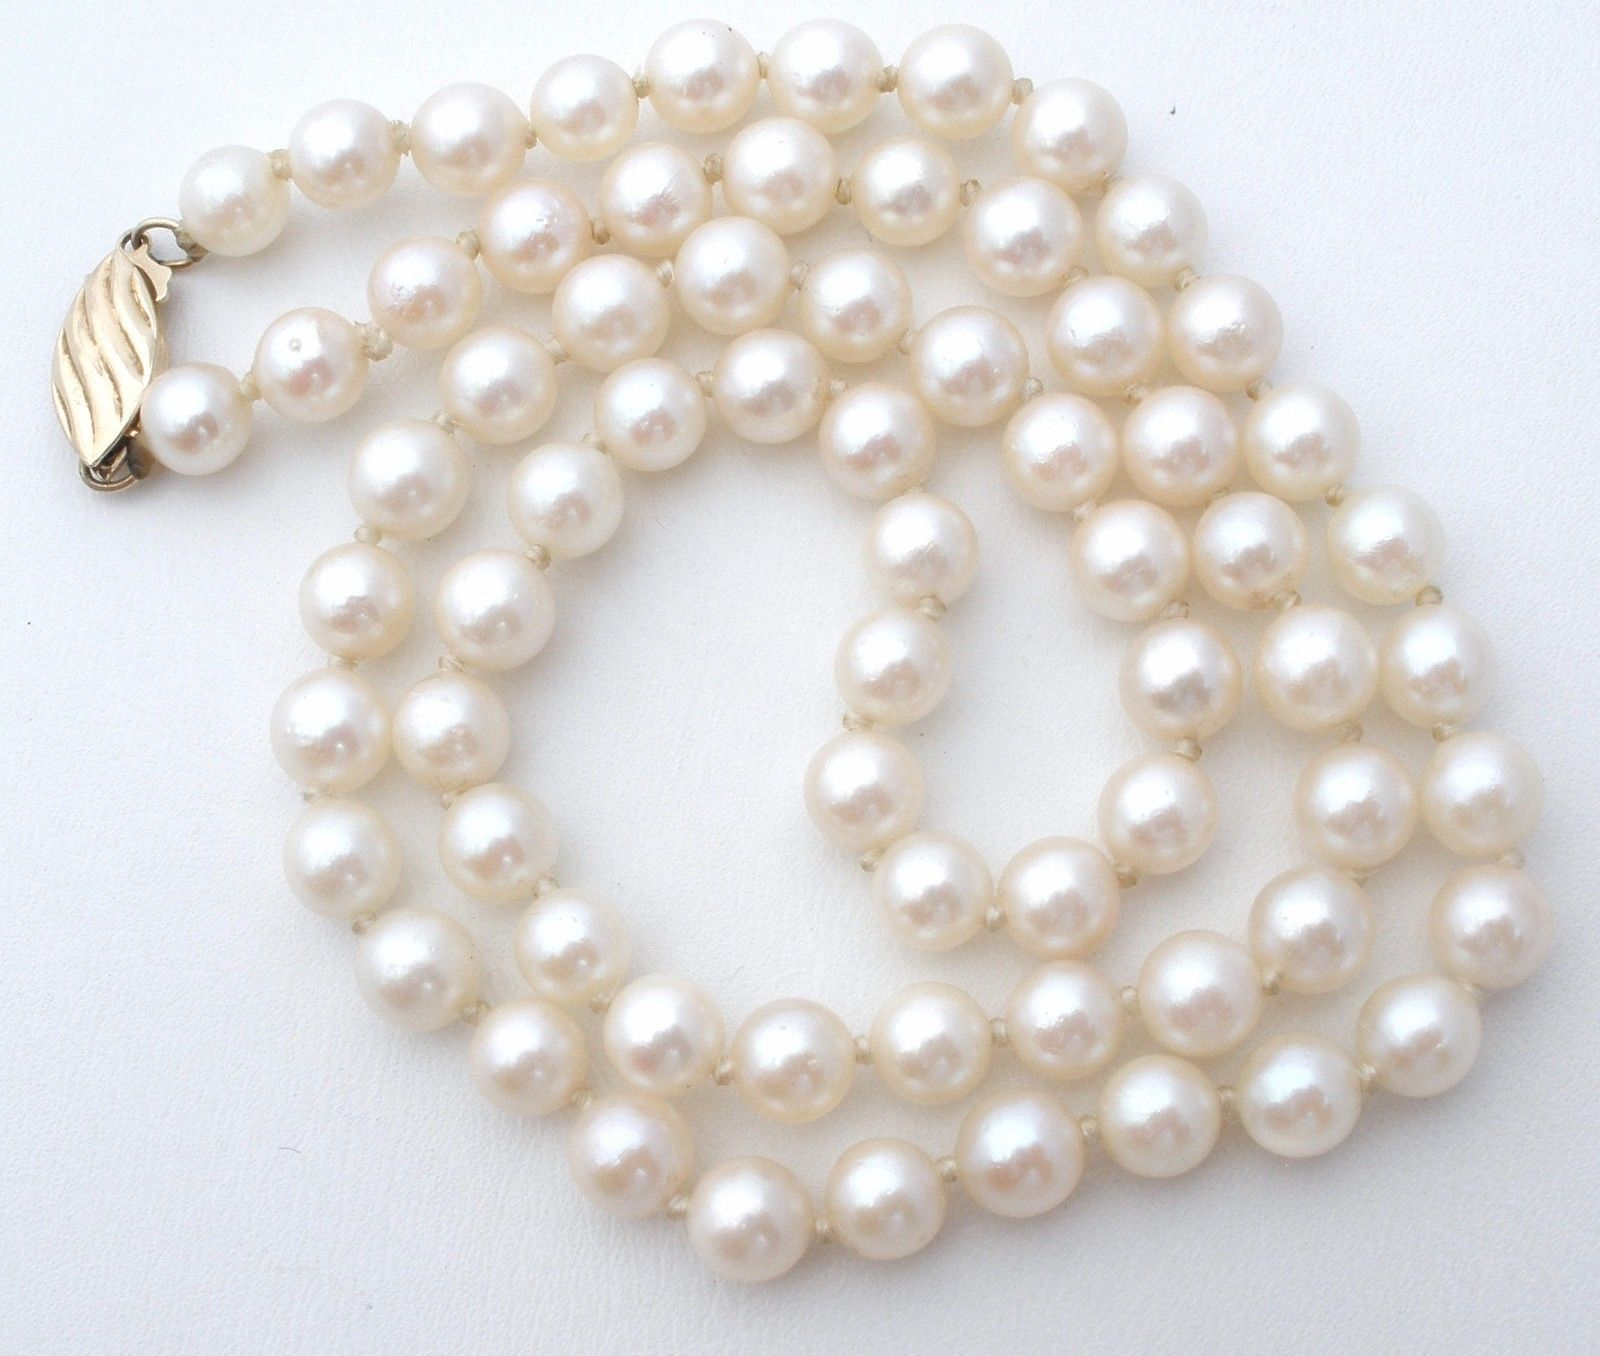 a4493f8cb3f913 Genuine Pearl Necklace 14K Gold Clasp Hand Knotted Strand 17